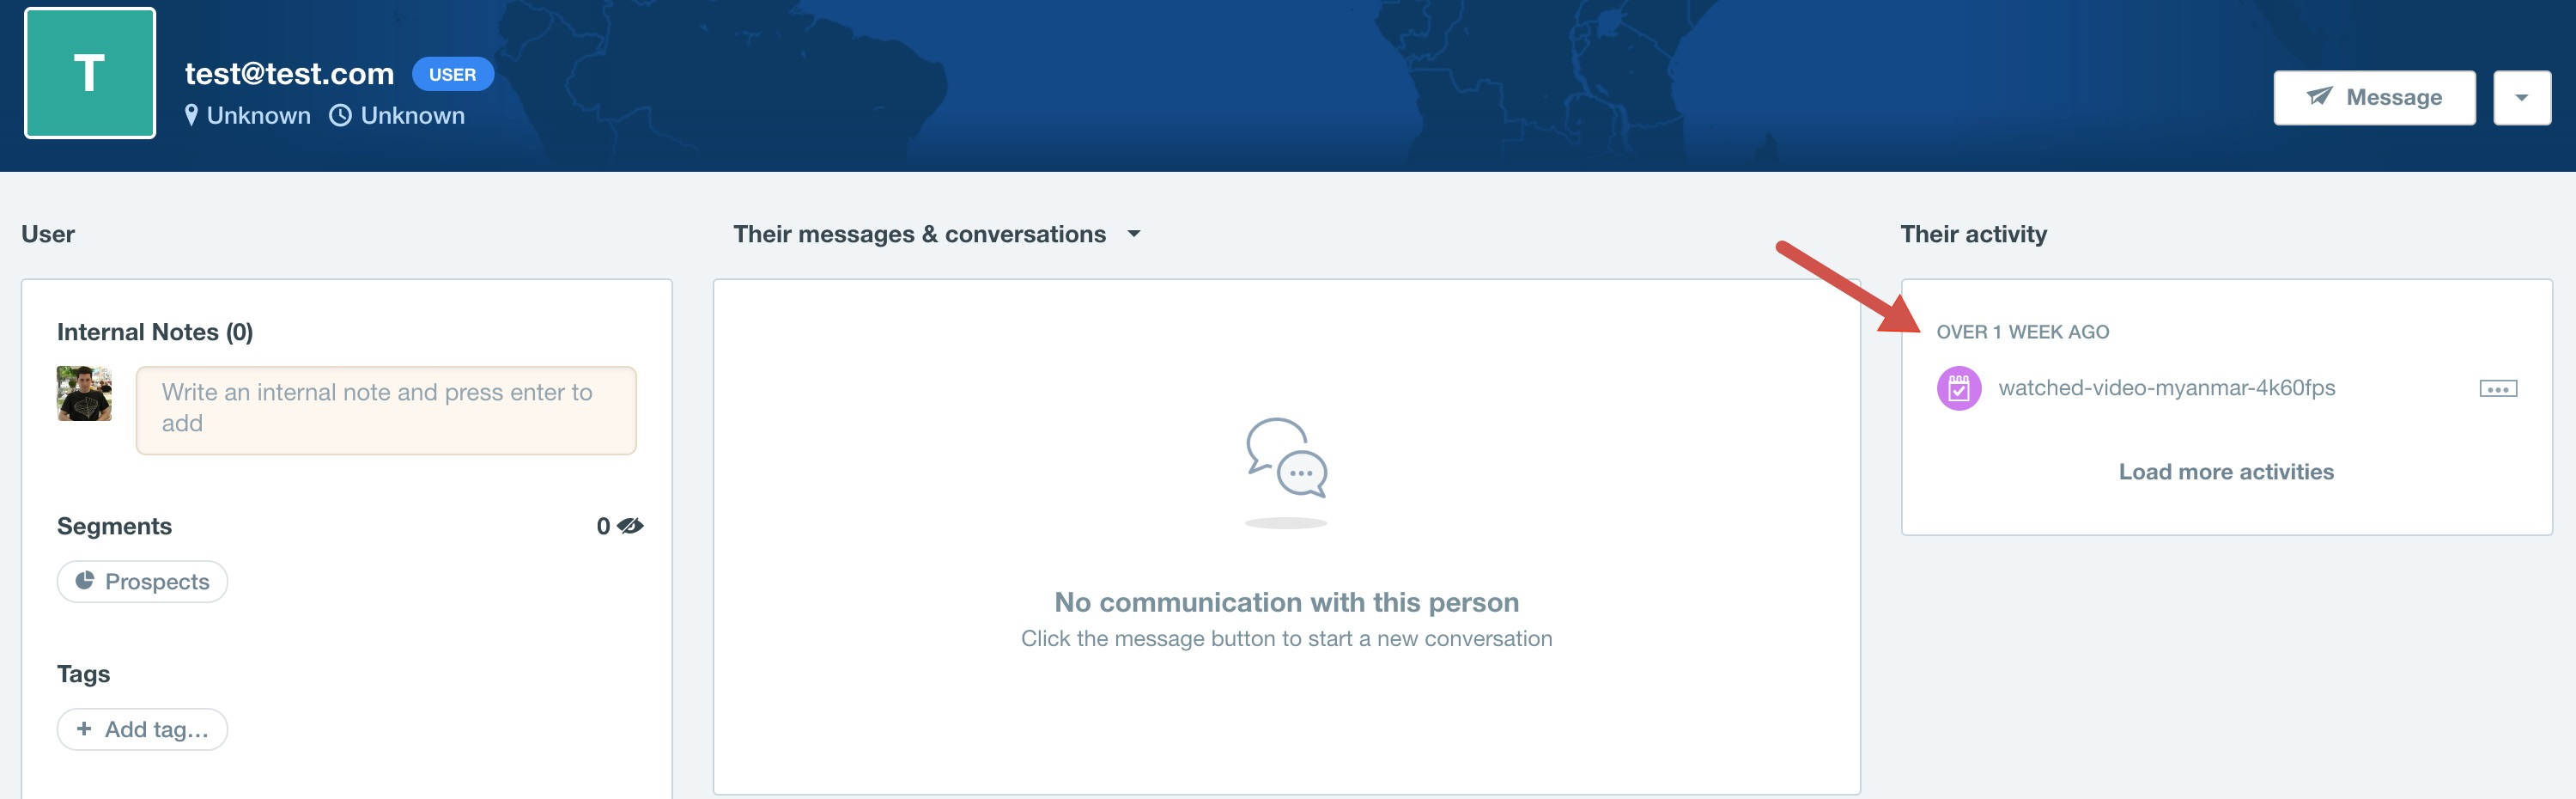 Intercom User info